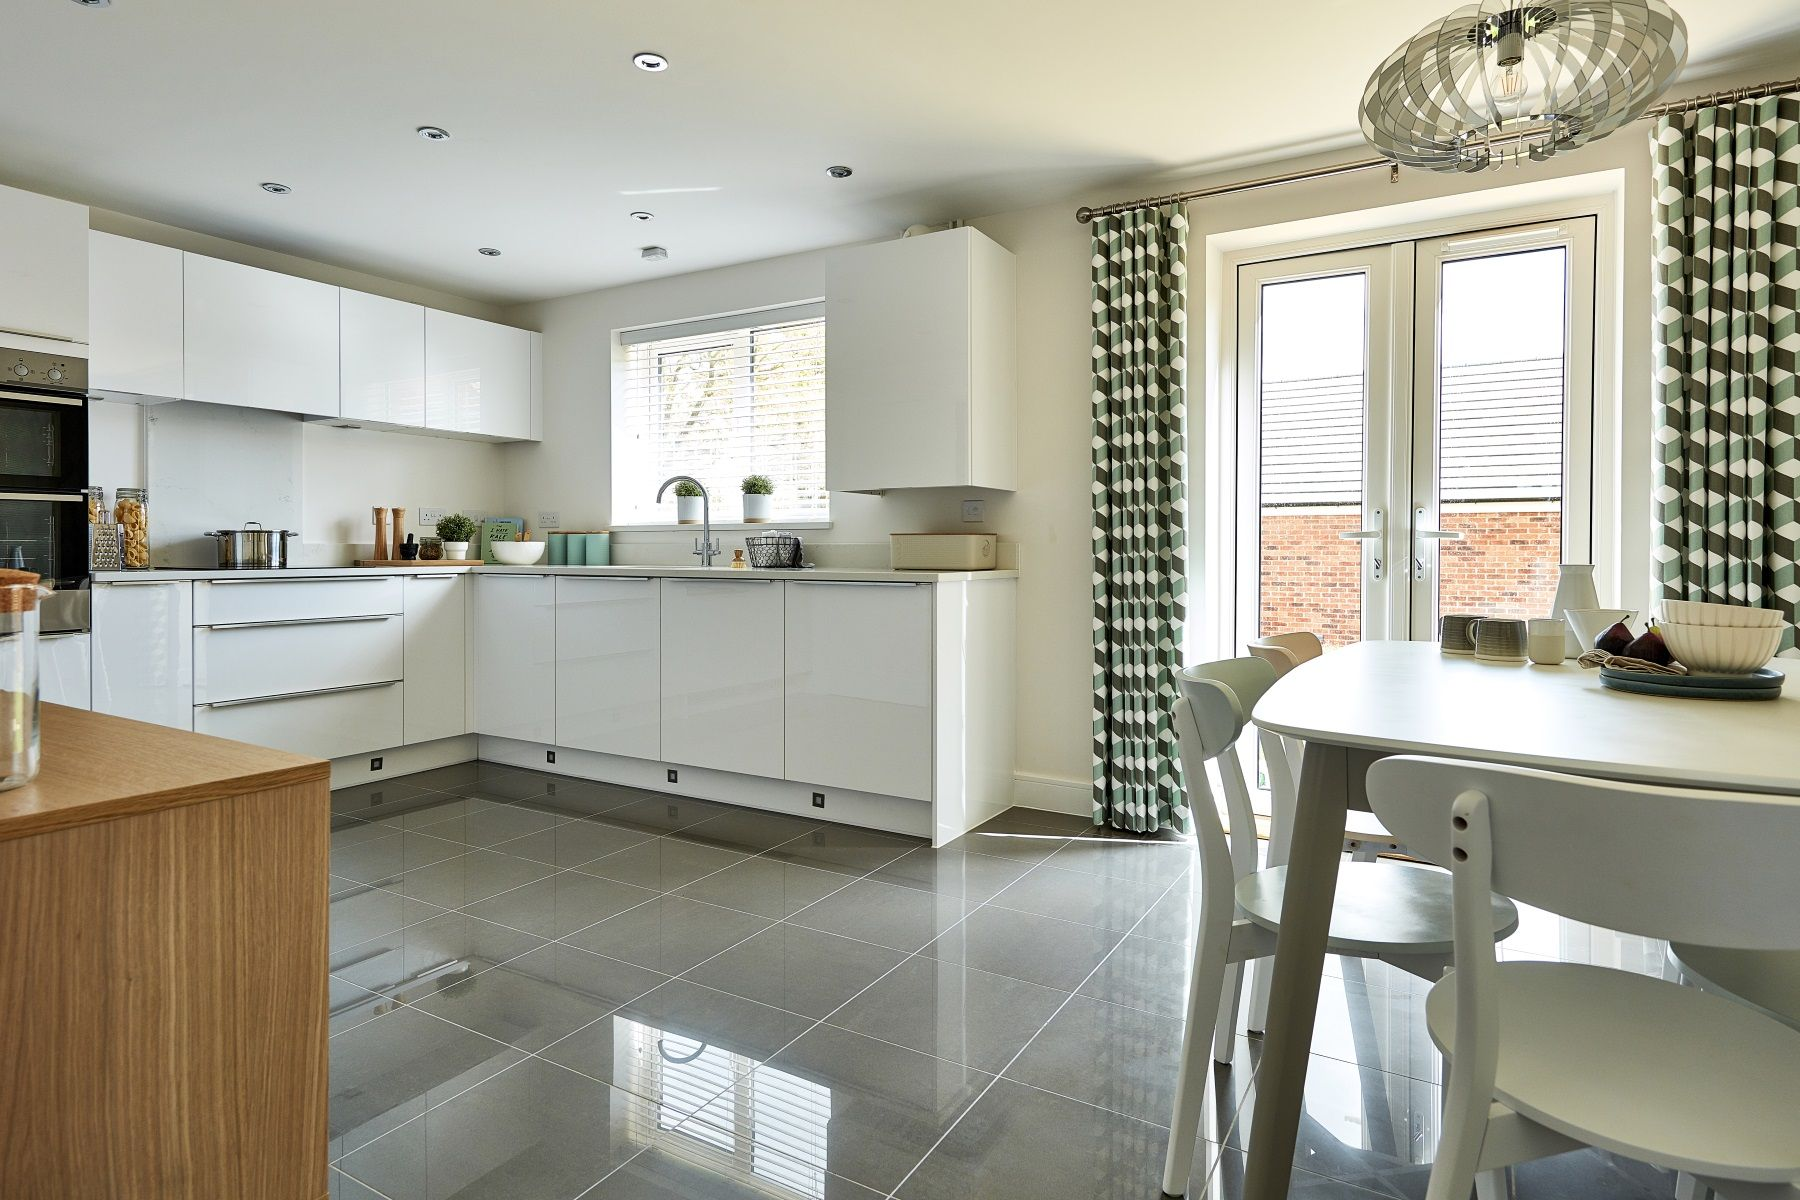 TW Exeter - Chy An Dowr - Midford example kitchen 2